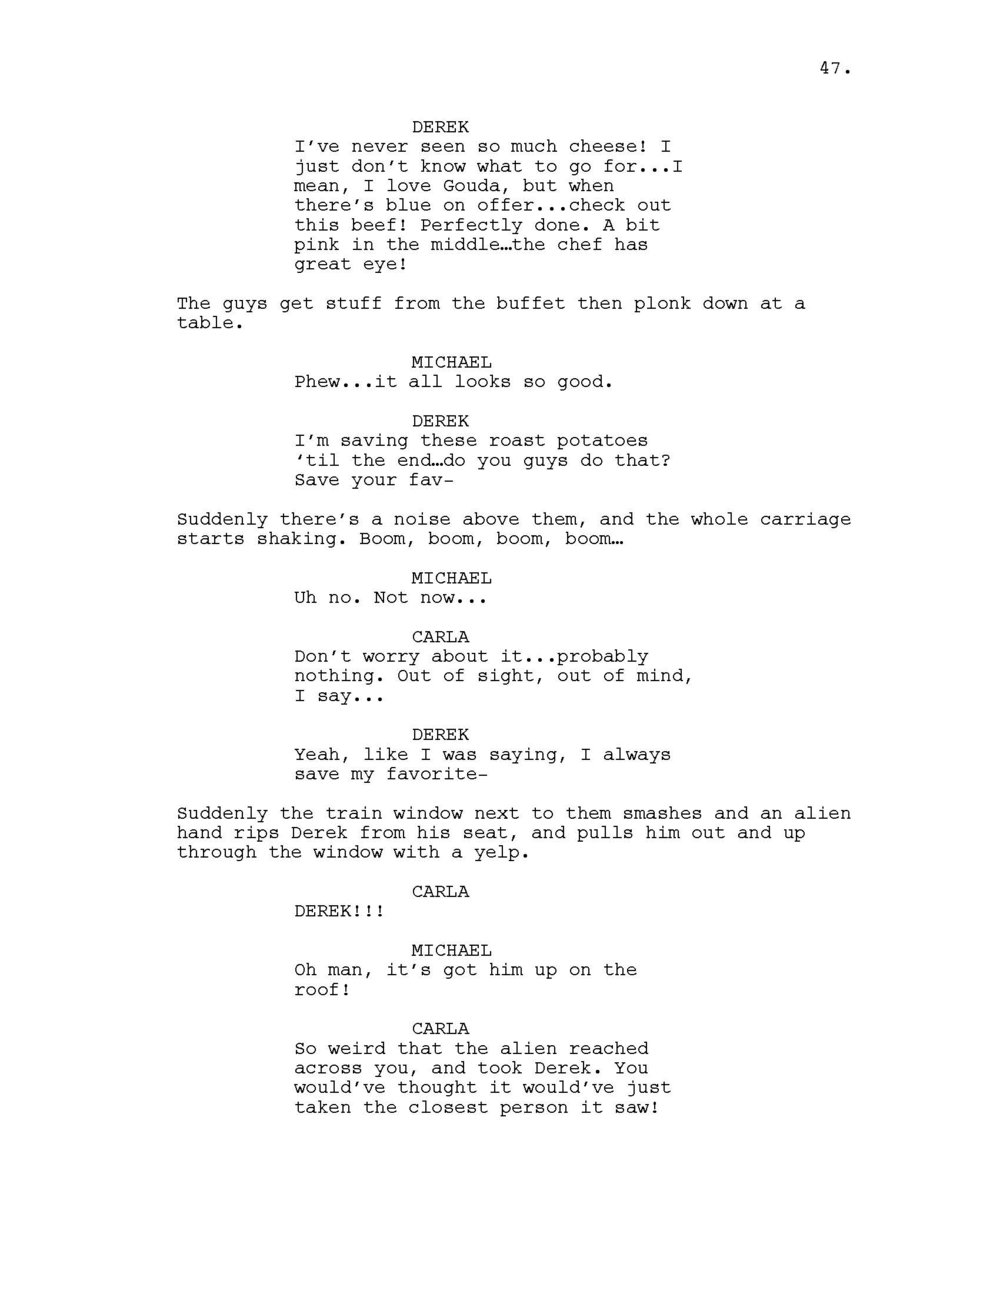 INVISIBLE WORLD SCRIPT_Page_048.jpg